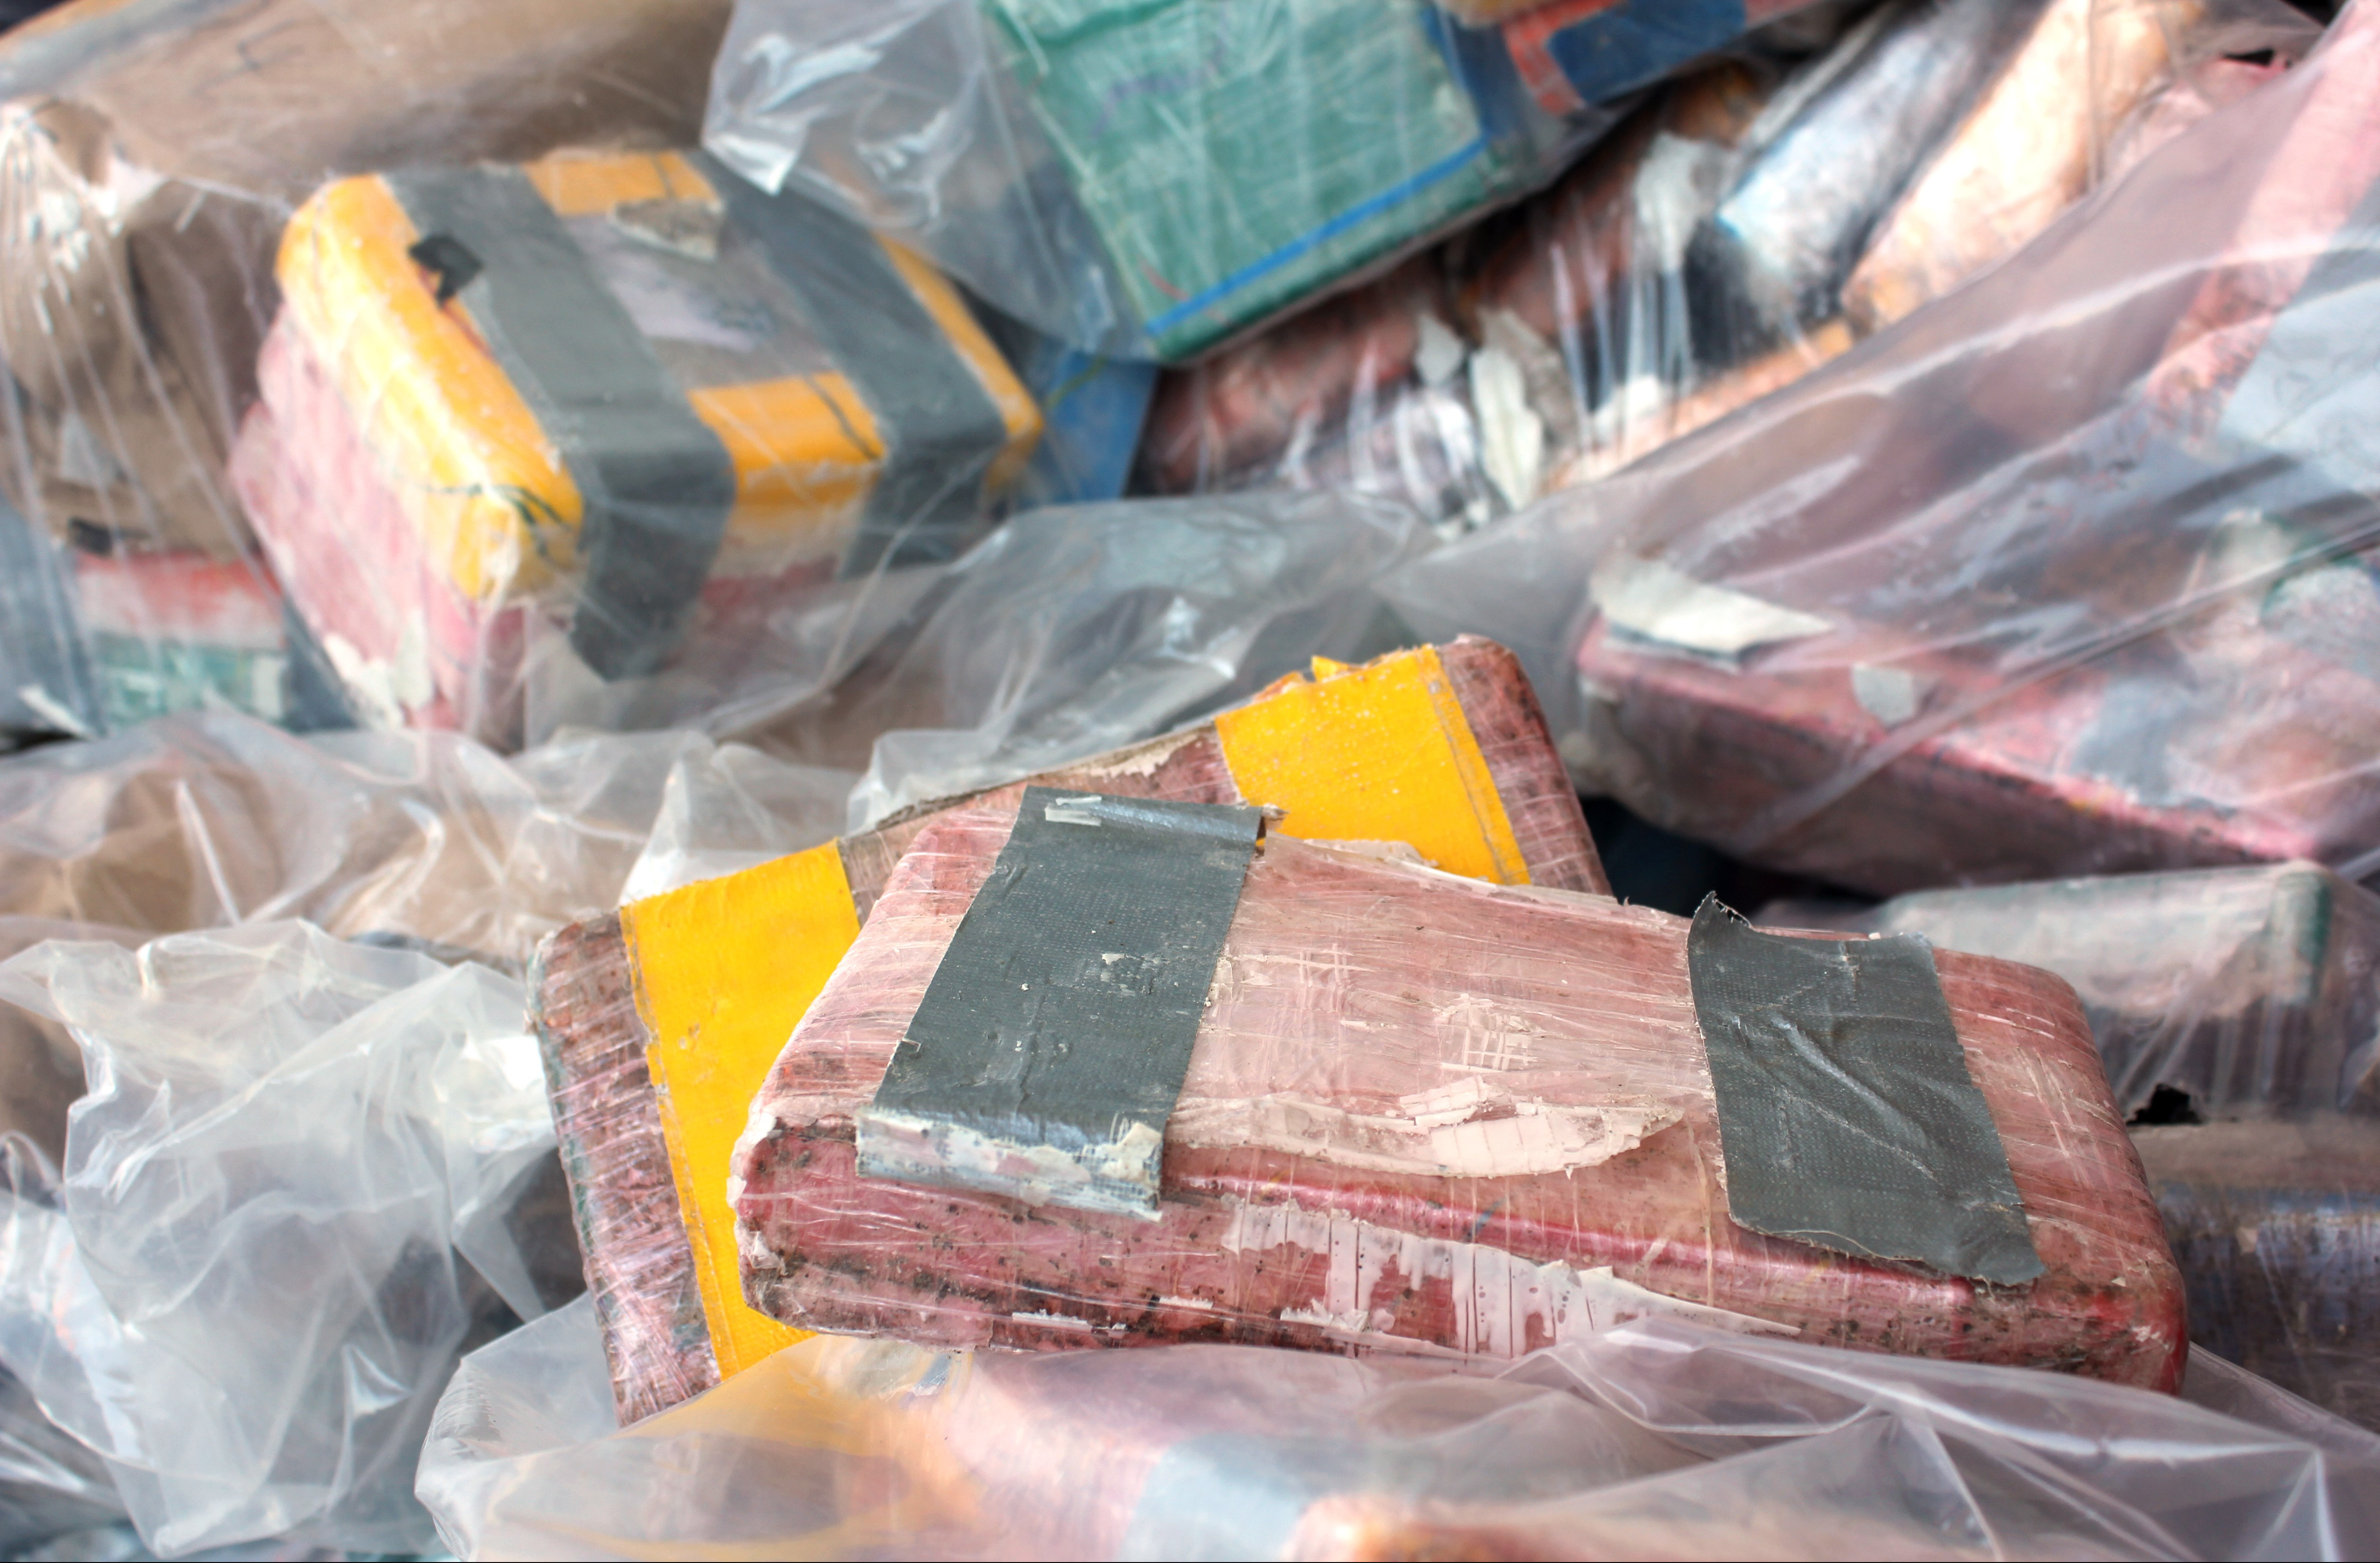 Intercontinental investigation nets largest cocaine haul in OPP history